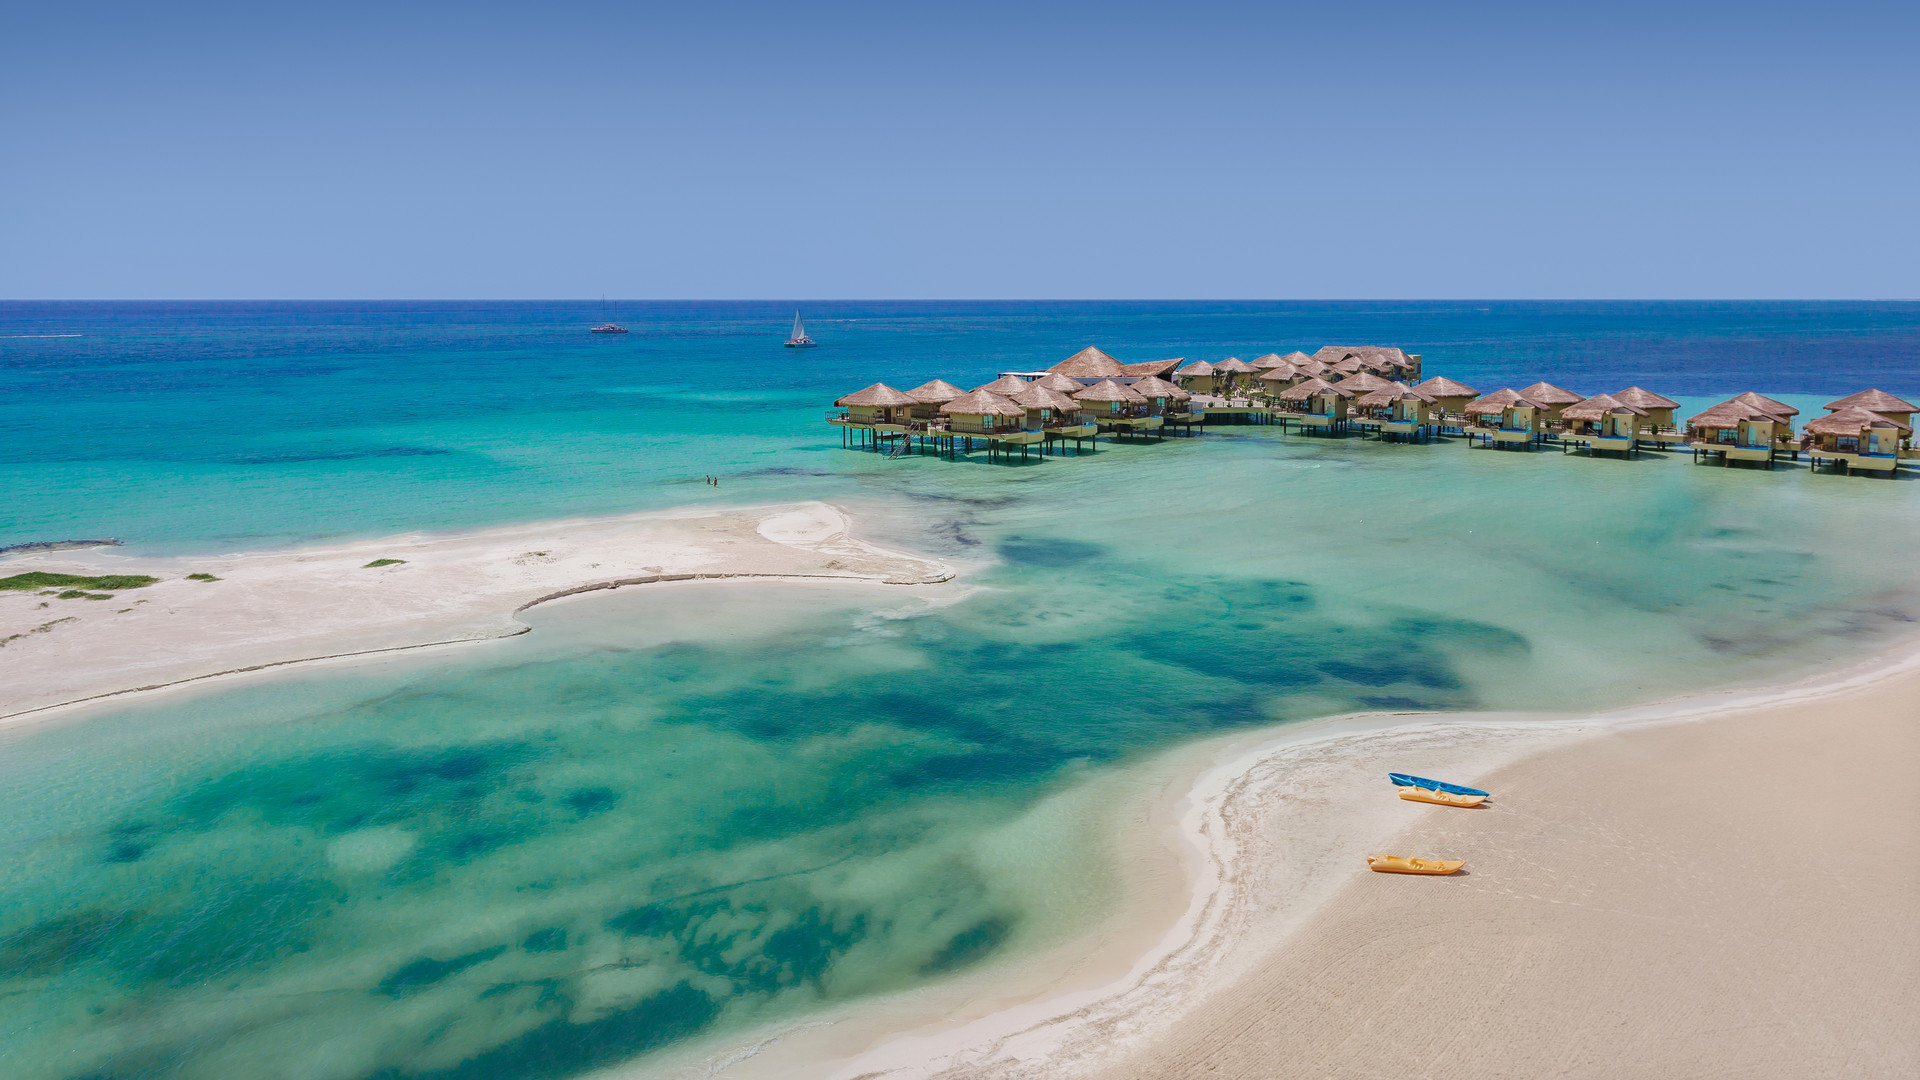 Hotels sky water outdoor Nature Beach landform geographical feature shore body of water Coast Sea Ocean caribbean vacation bay cape Lagoon sand islet wind wave Island